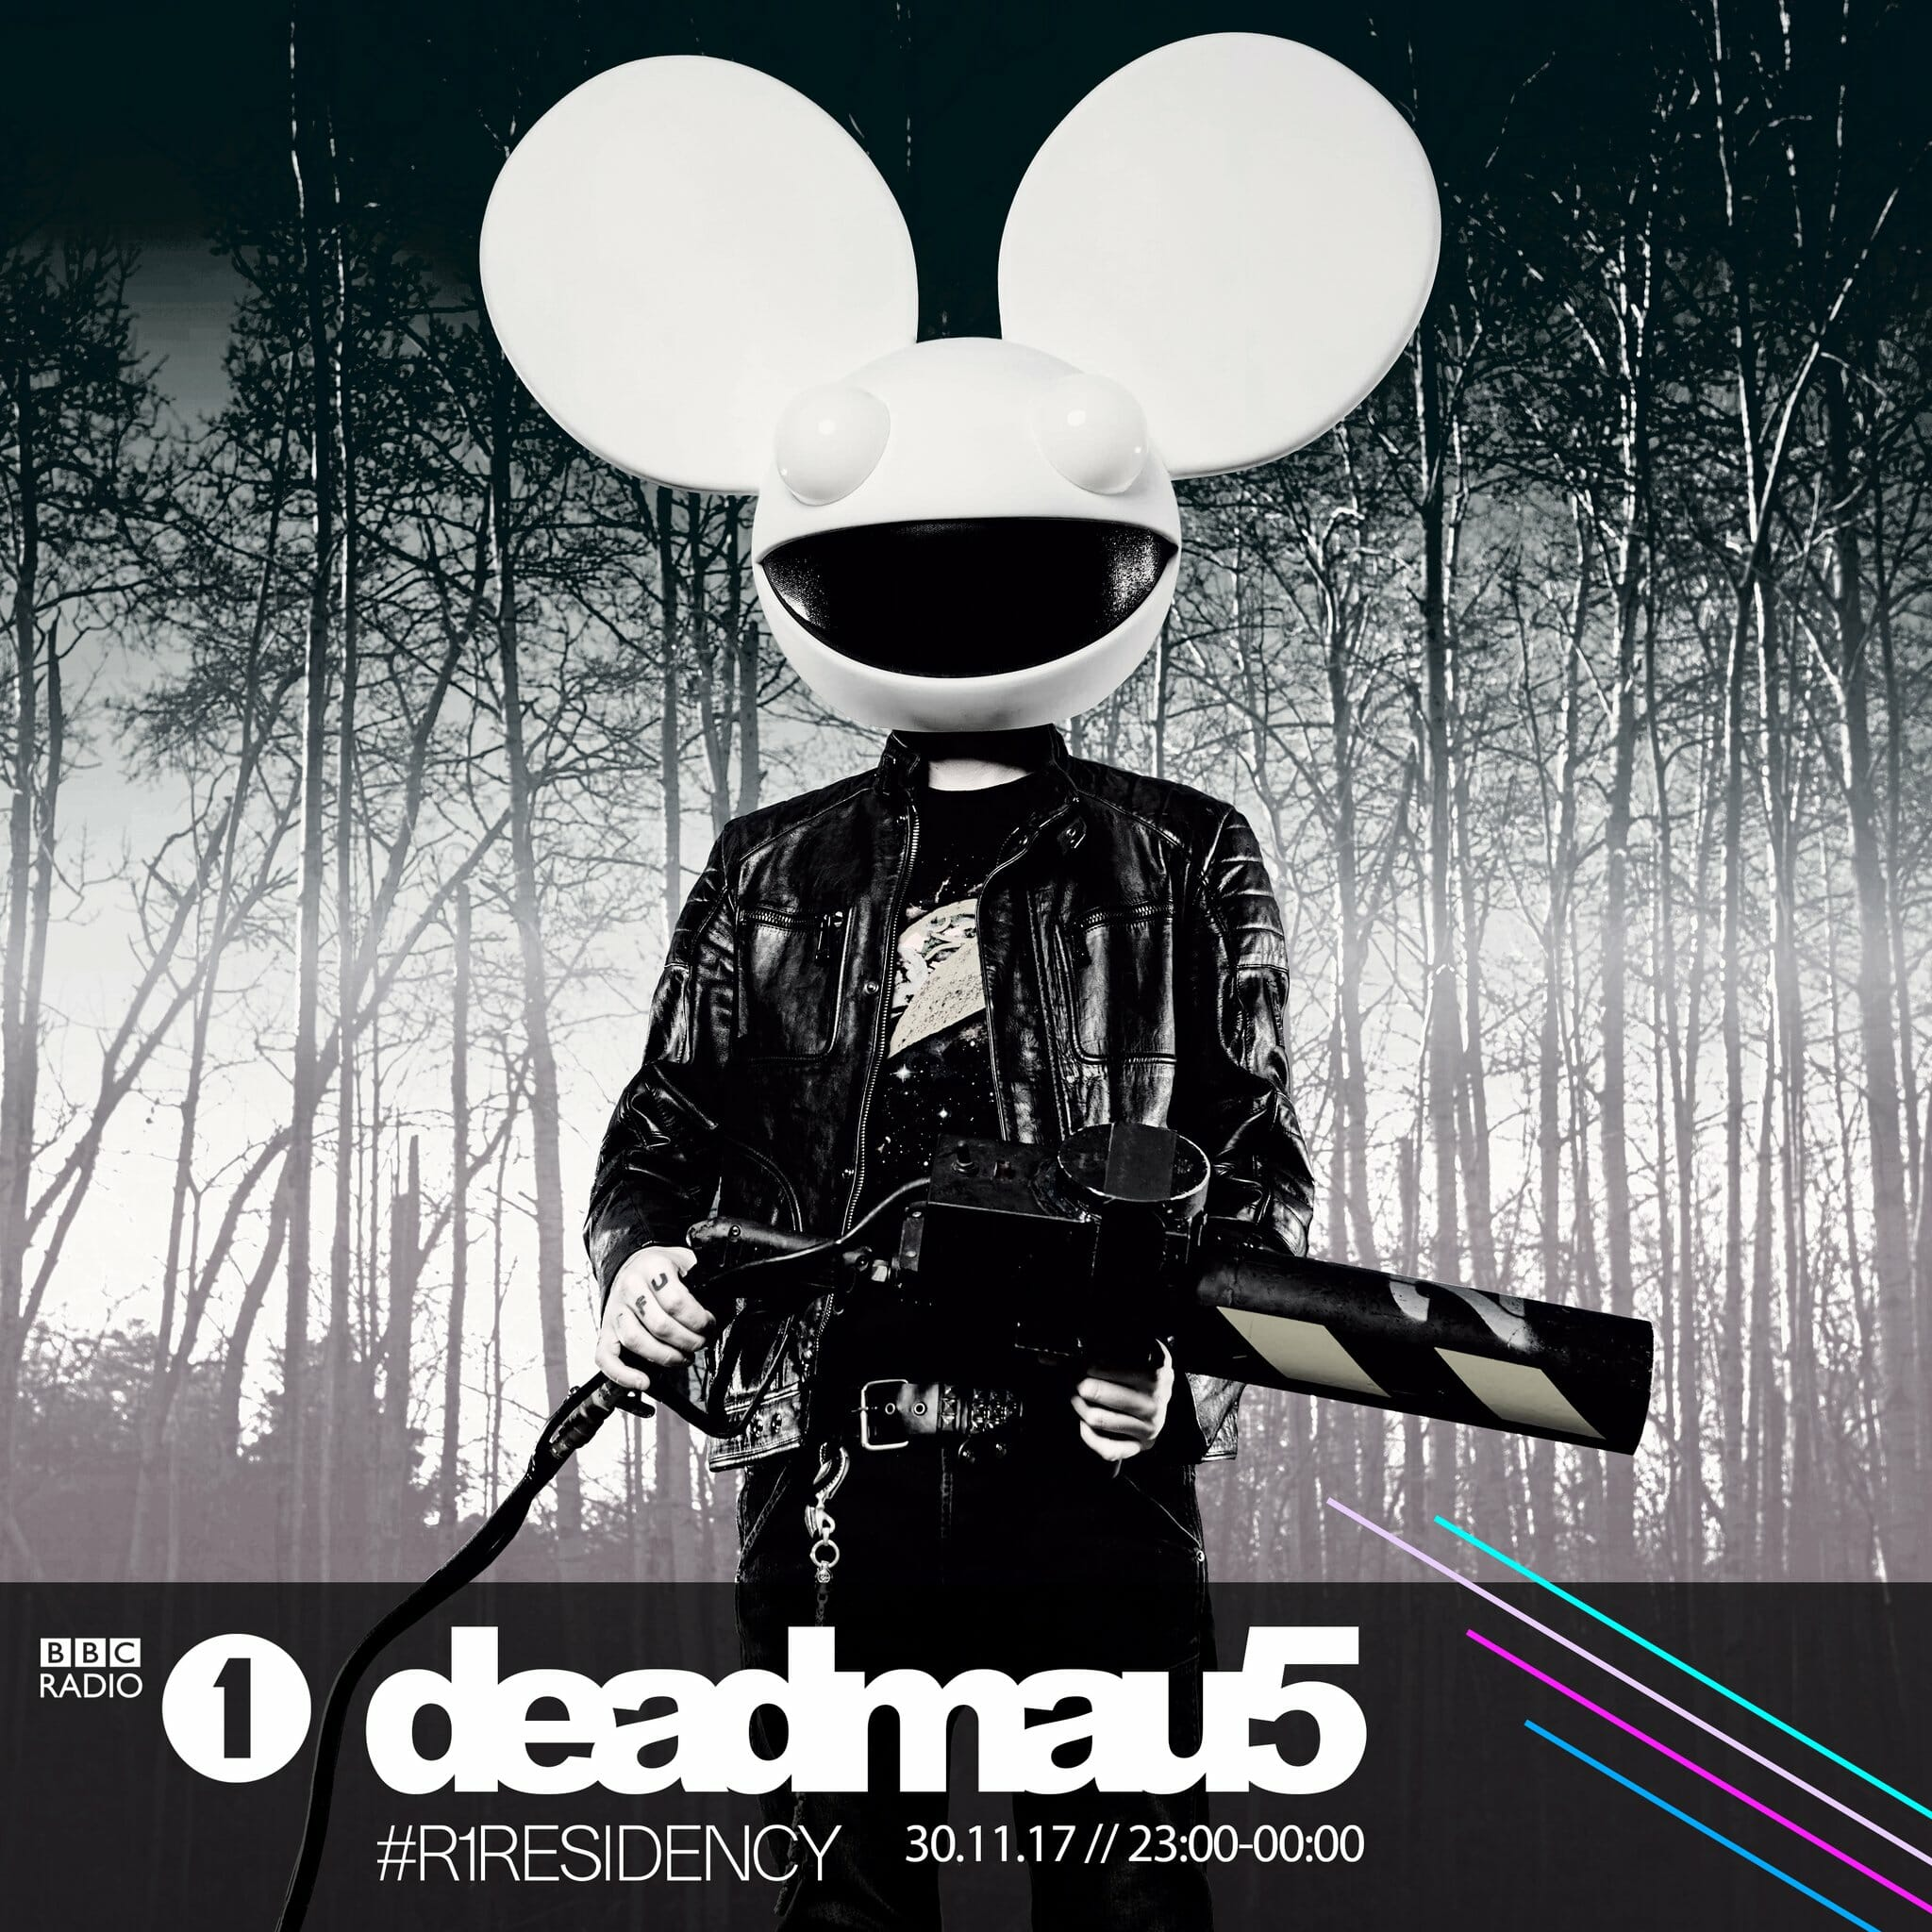 deadmau5 stuns in BBC Radio 1 residency finale, confirms 'new music, new tours, & a new show of some kind' for 2018DP6l HEW0AE2TL